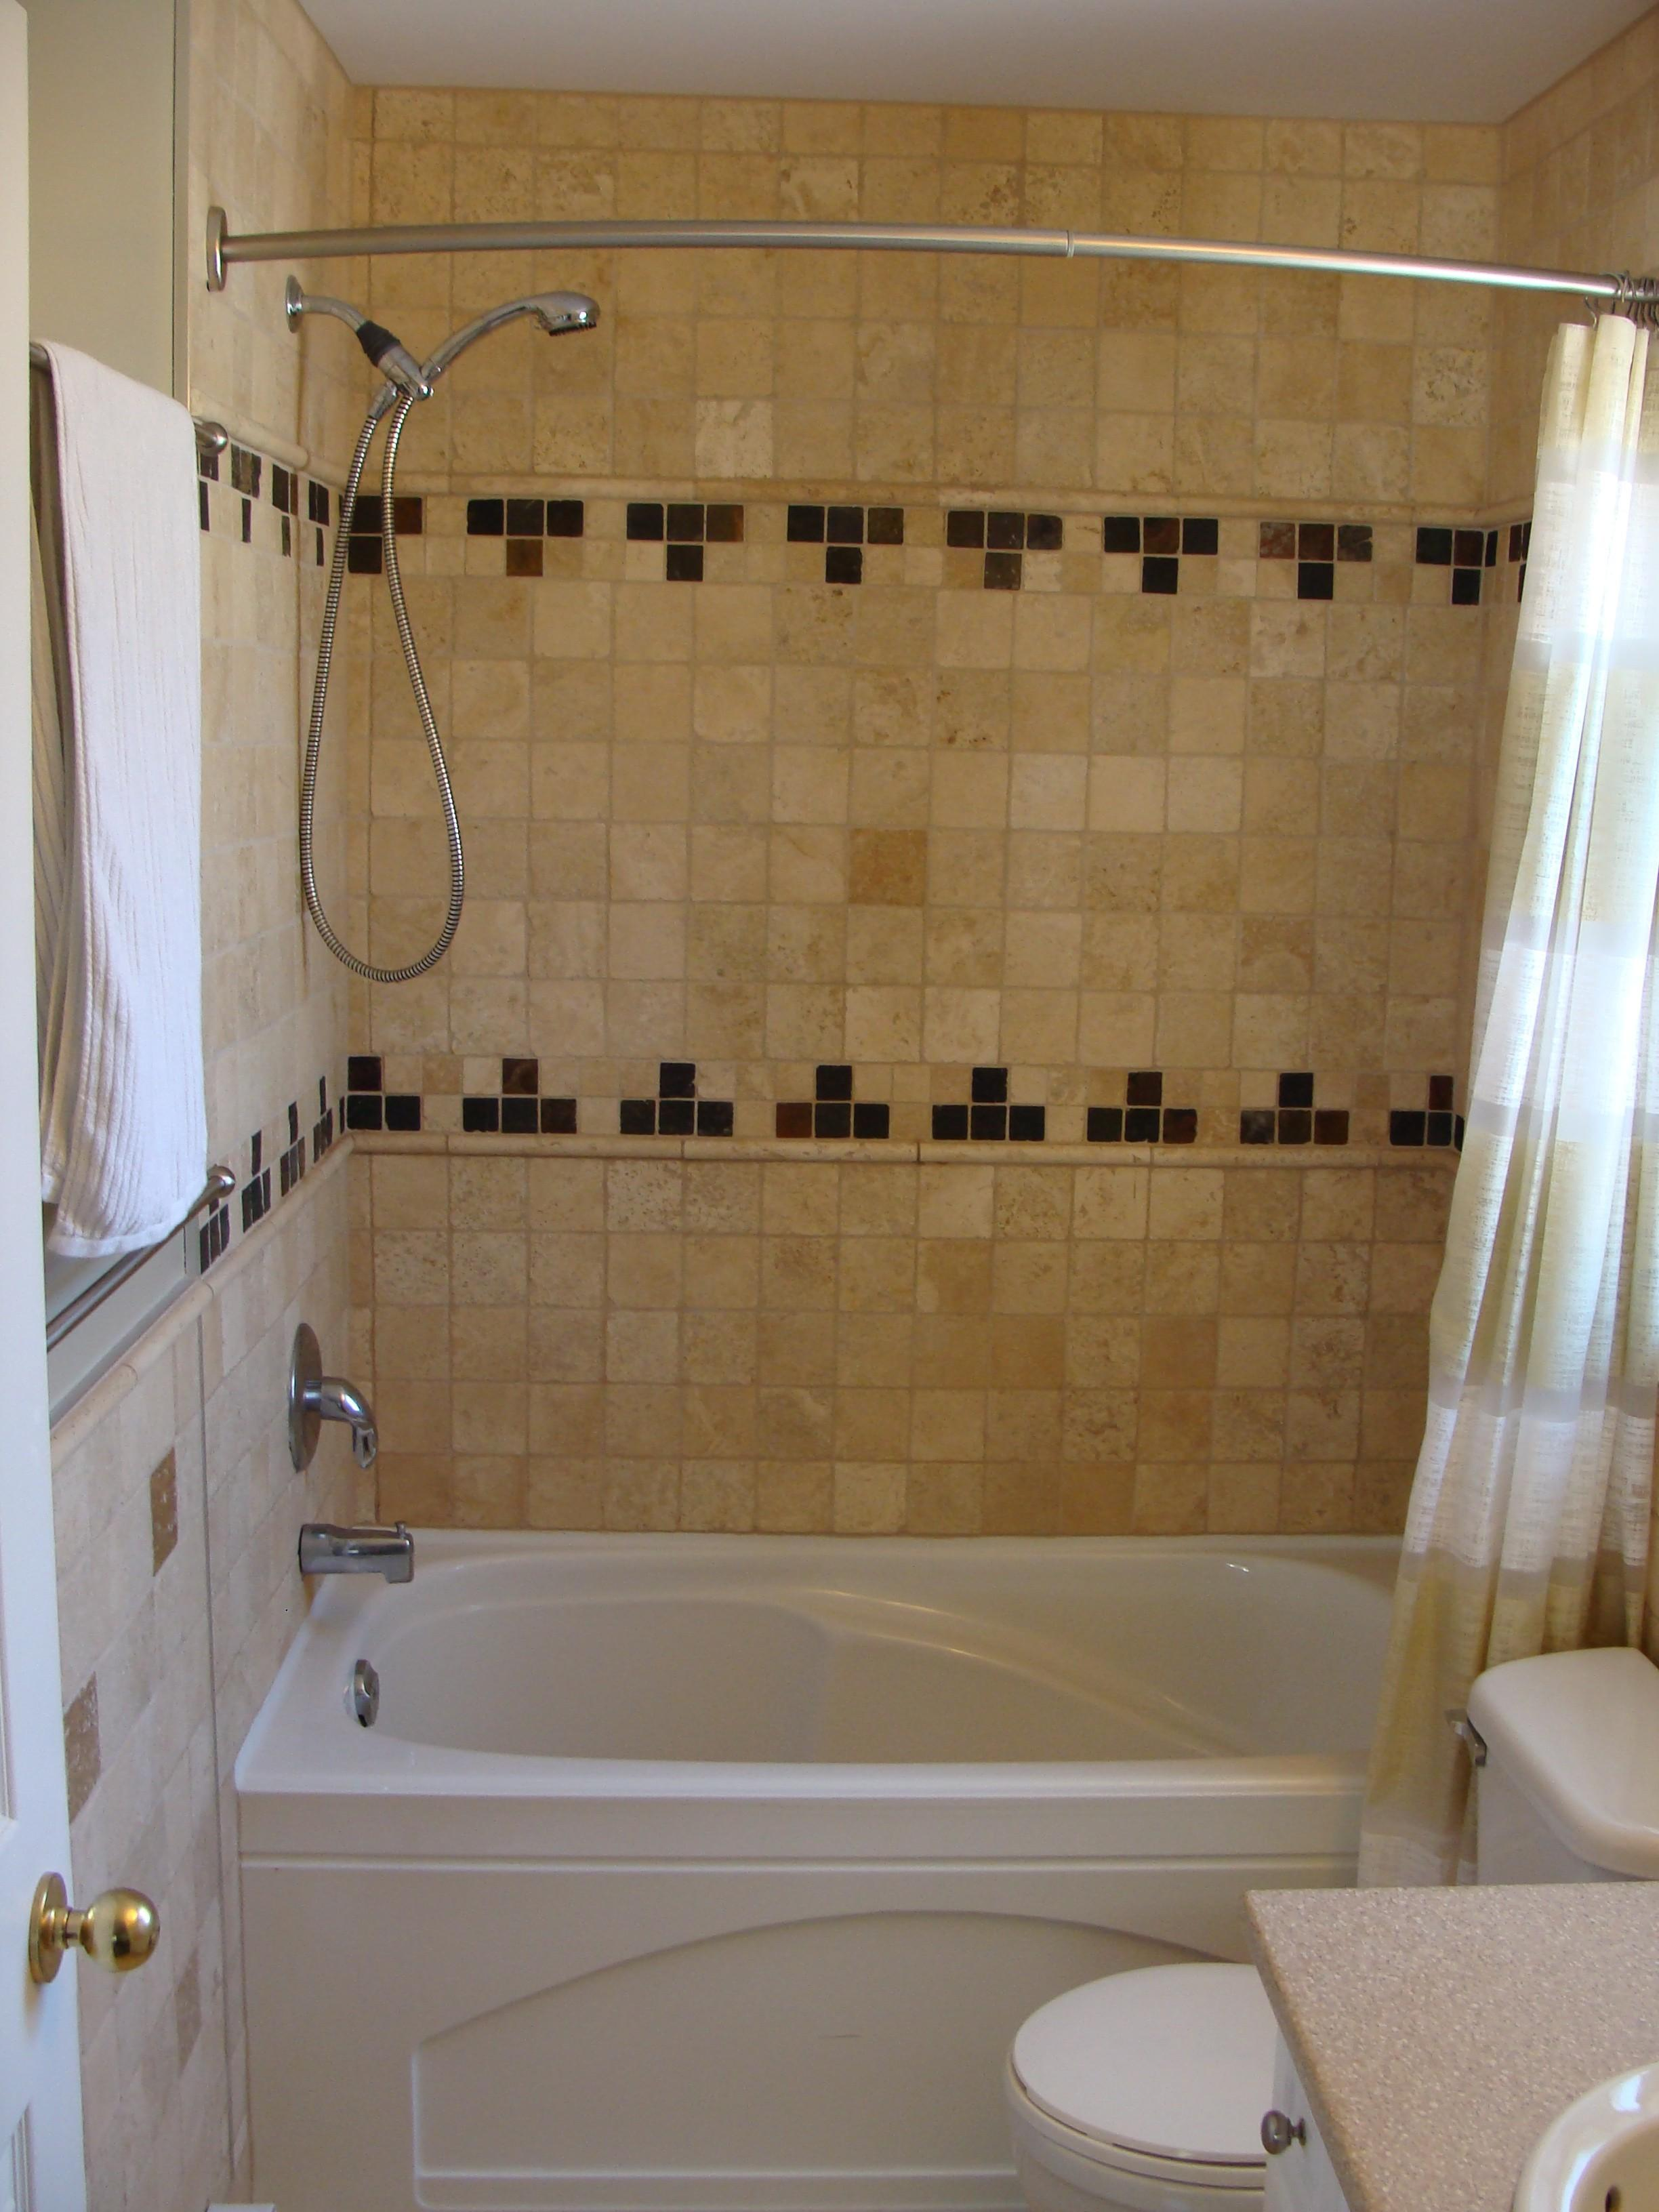 Bathroom Tub Tile Ideas Unique Surround